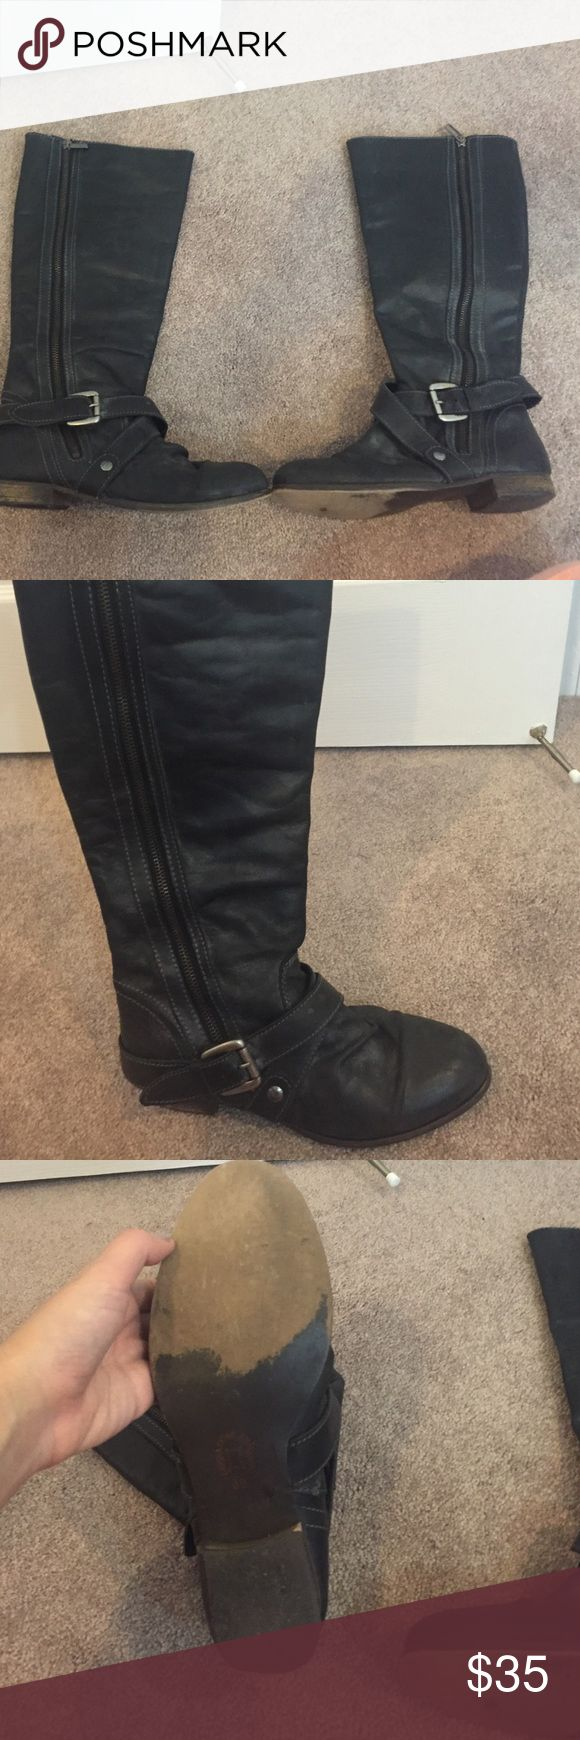 Steve Madden black boots Distressed black leather with buckle, slightly scuffed bottoms but still in great condition. Steve Madden Shoes Winter & Rain Boots